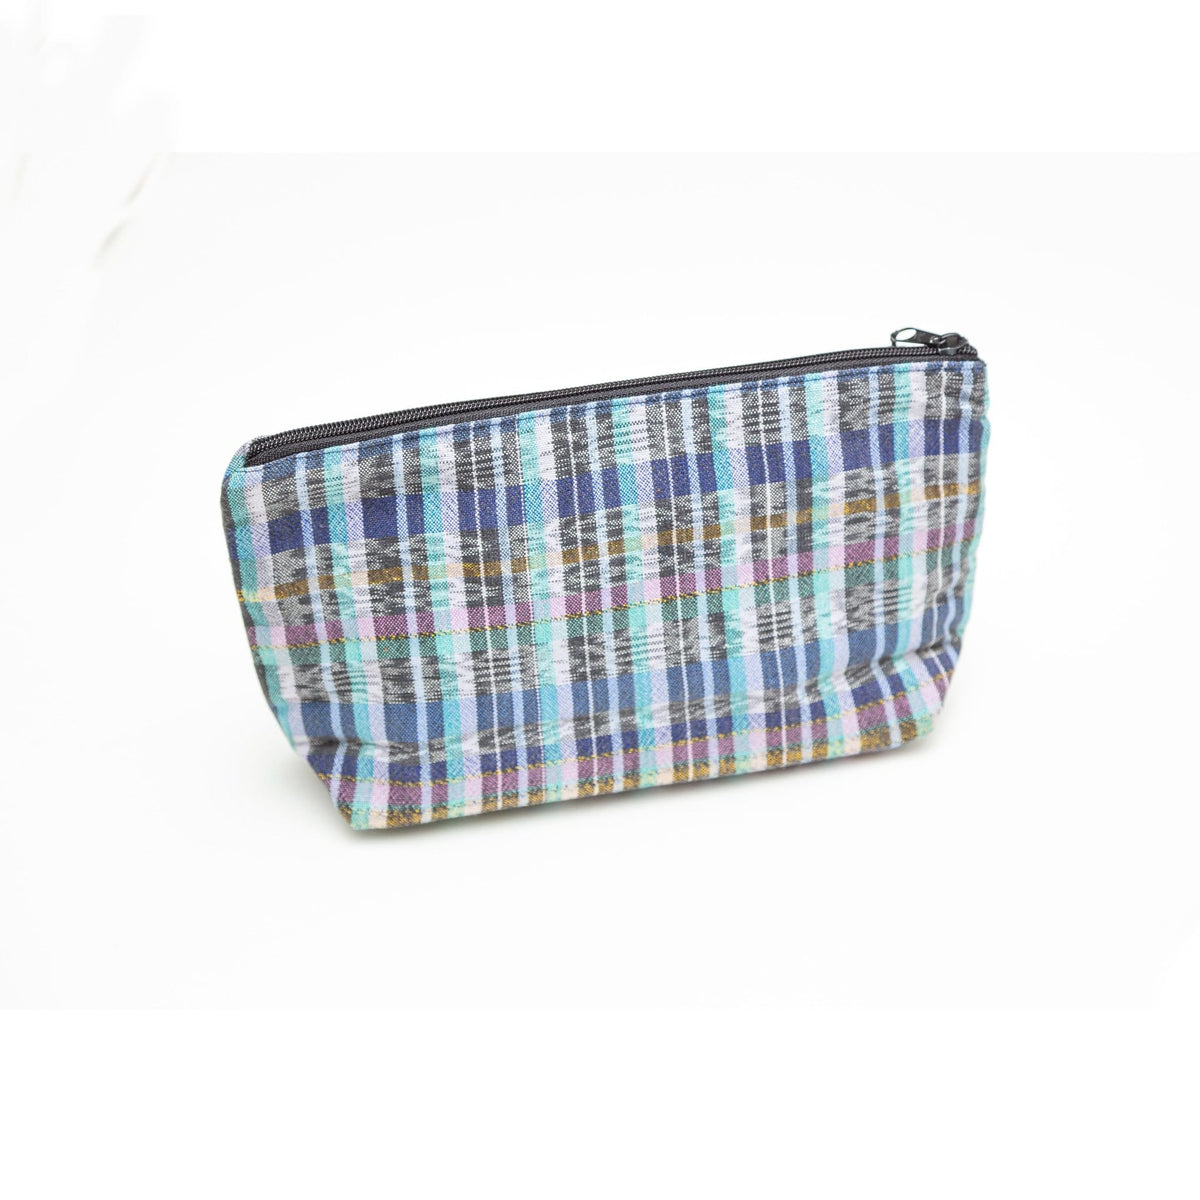 Plastic-Lined Cosmetic Travel Bag